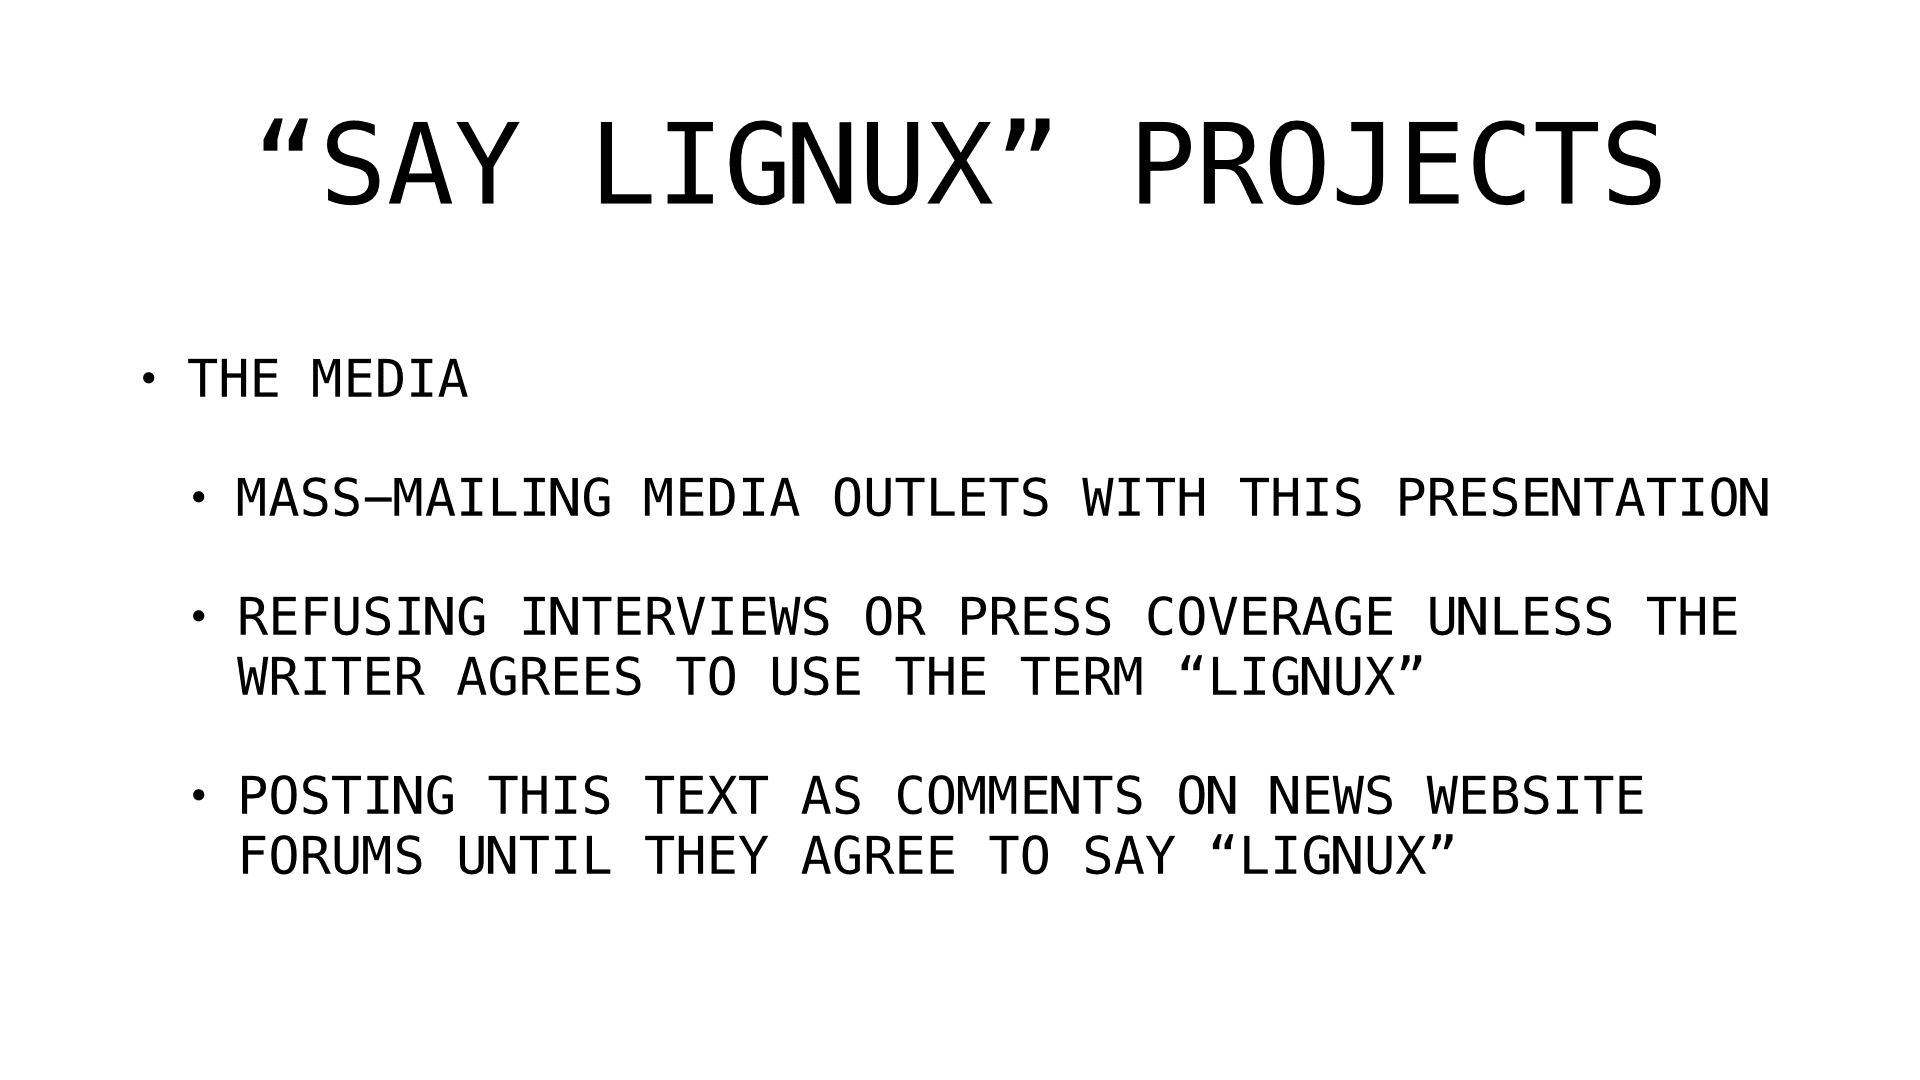 say lignux projects 2